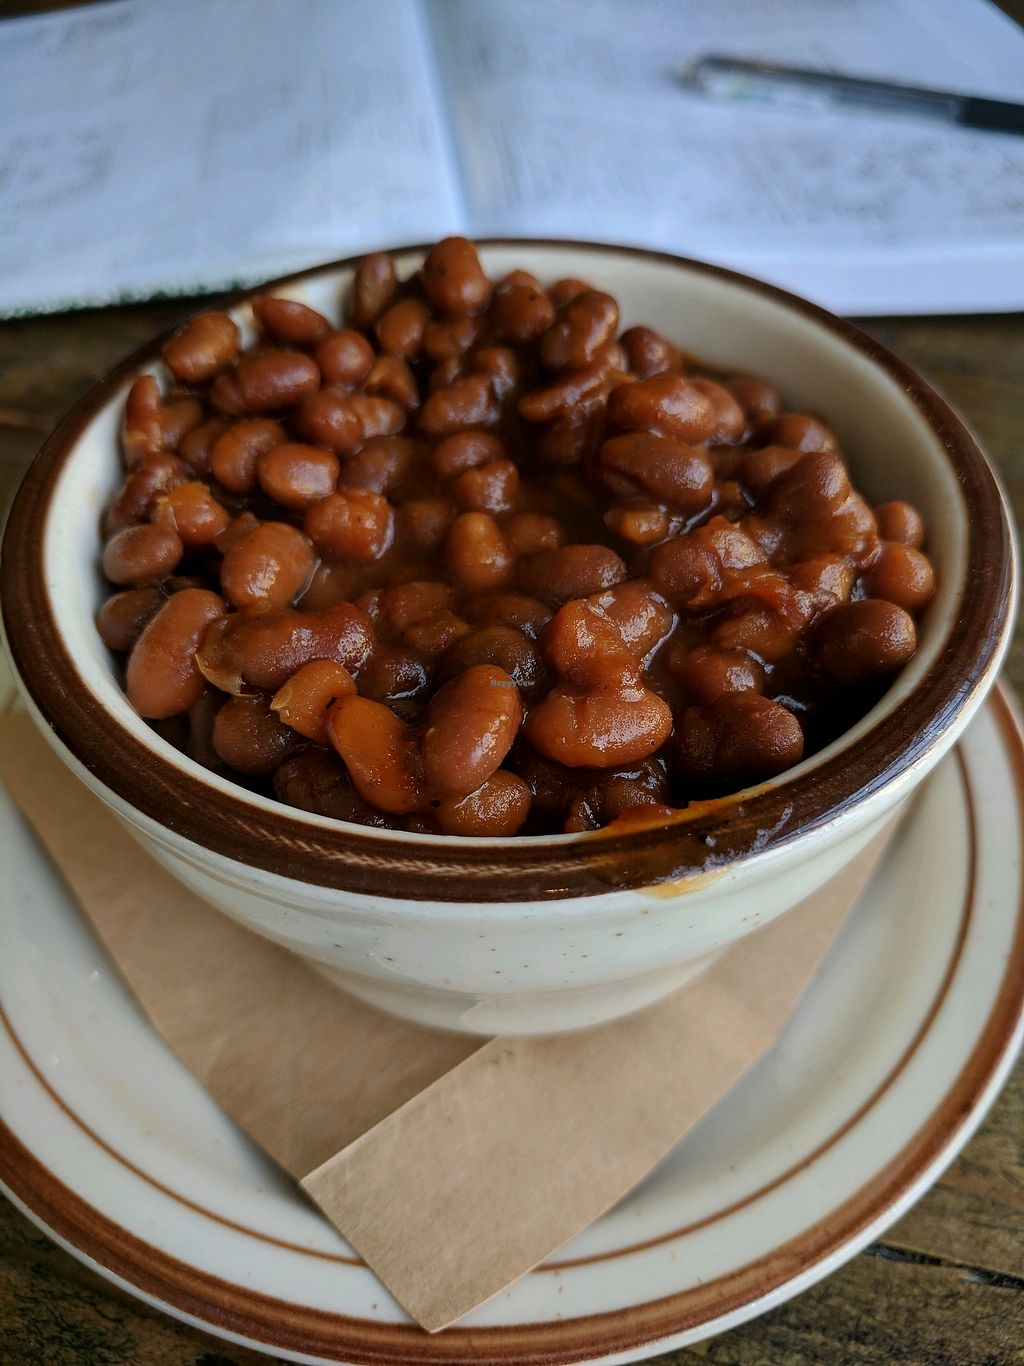 """Photo of CLOSED: The Lodge on Haight  by <a href=""""/members/profile/MatthewStein"""">MatthewStein</a> <br/>Vegetarian baked beans (which are vegan!) <br/> February 16, 2018  - <a href='/contact/abuse/image/108400/360092'>Report</a>"""